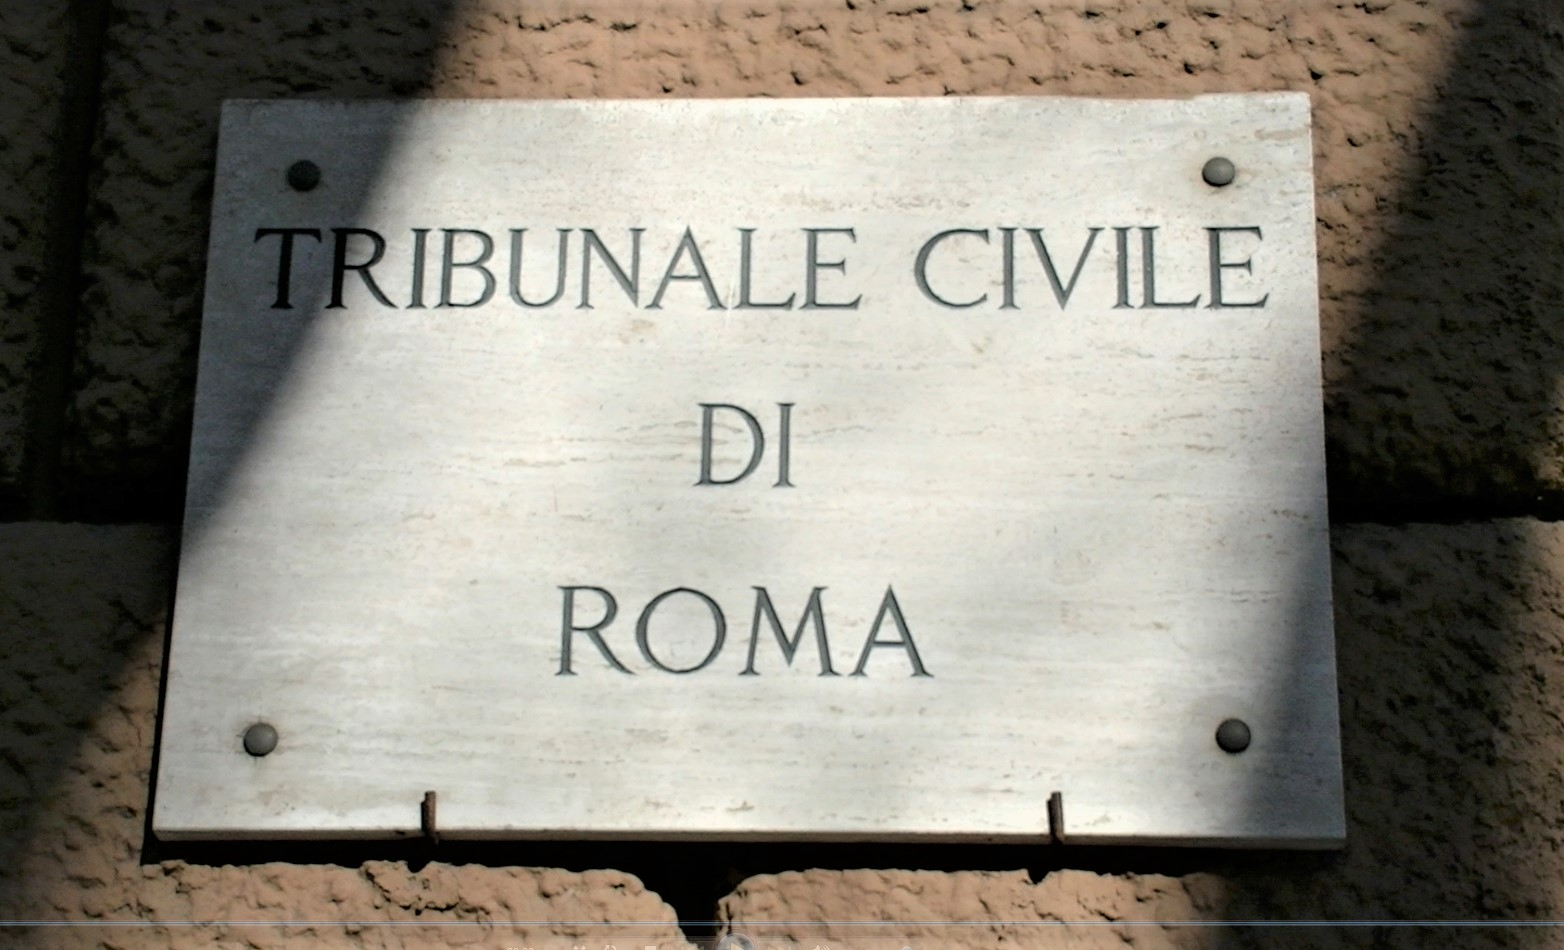 The dual citizenship proceeding before the Court of Rome